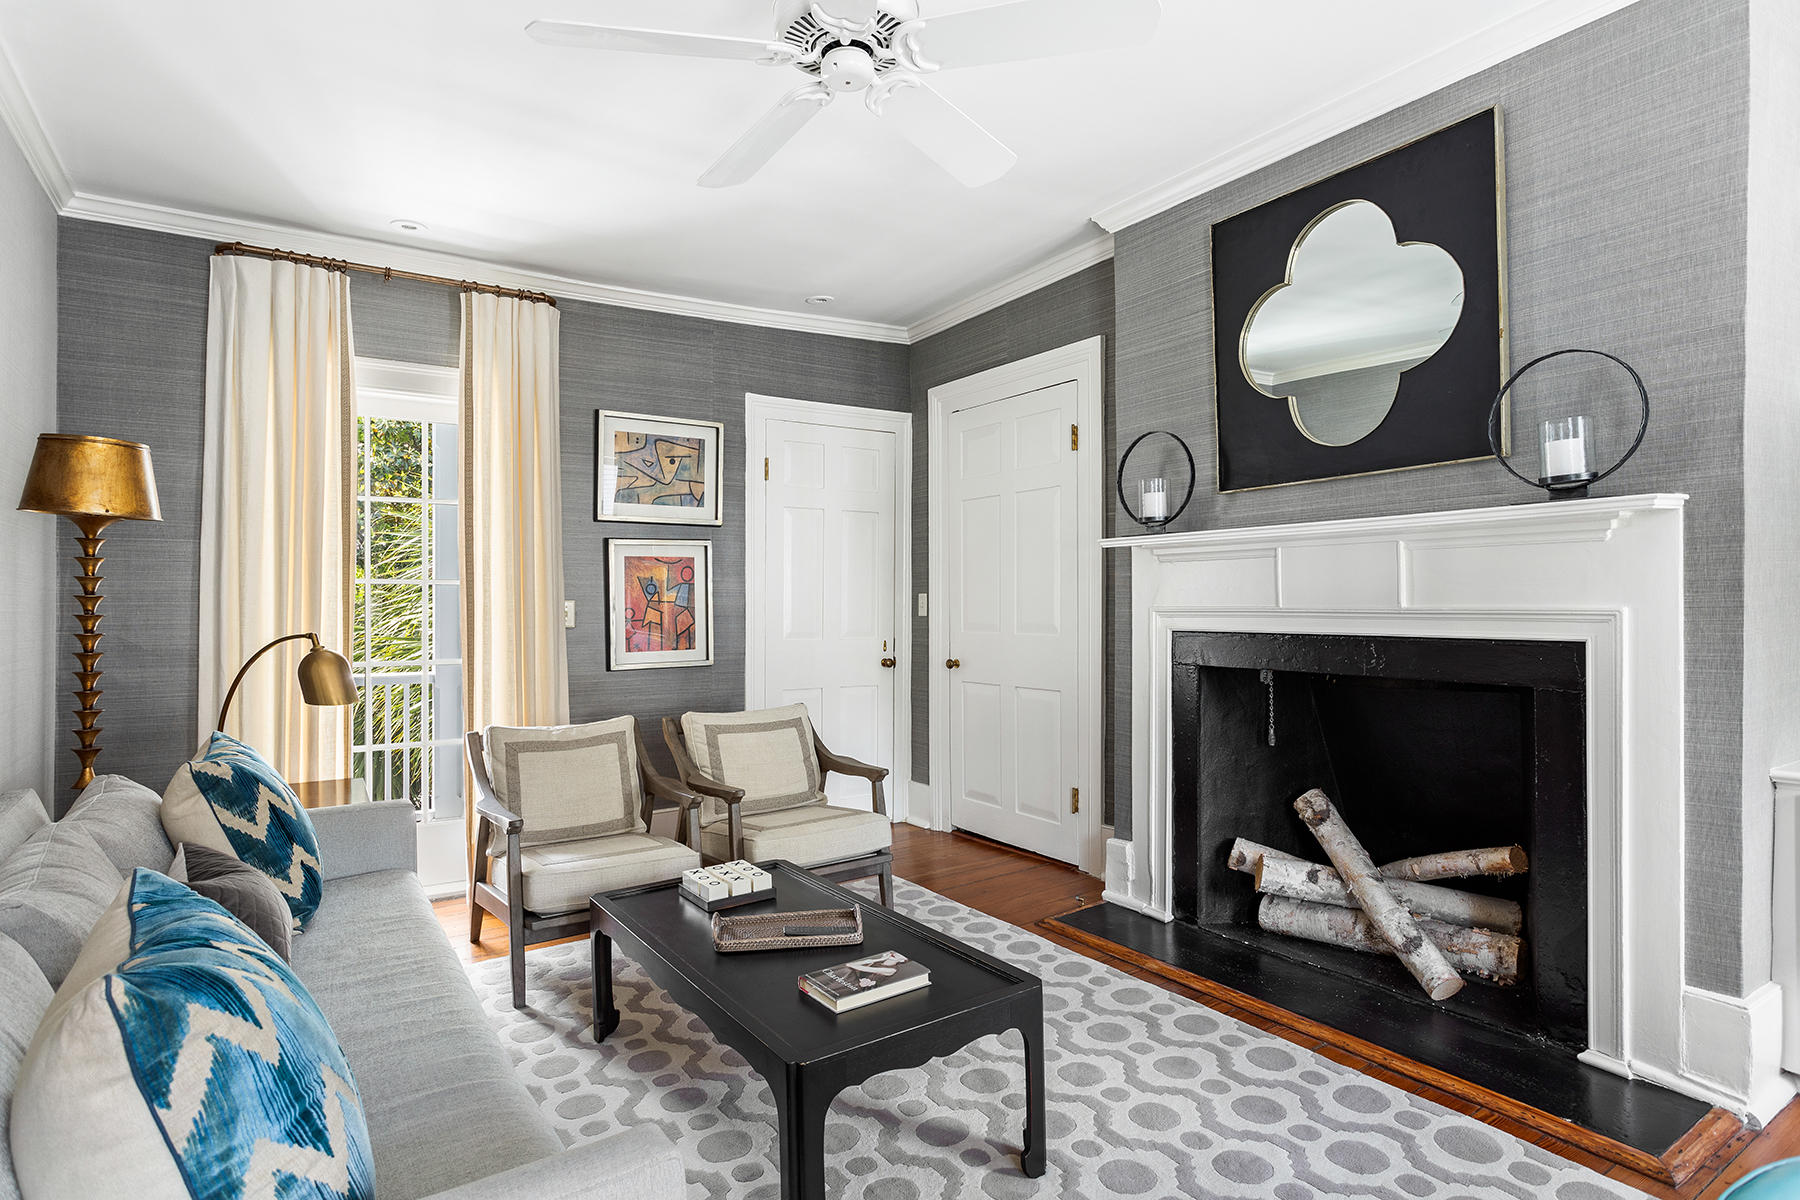 South of Broad Homes For Sale - 3 Atlantic, Charleston, SC - 11